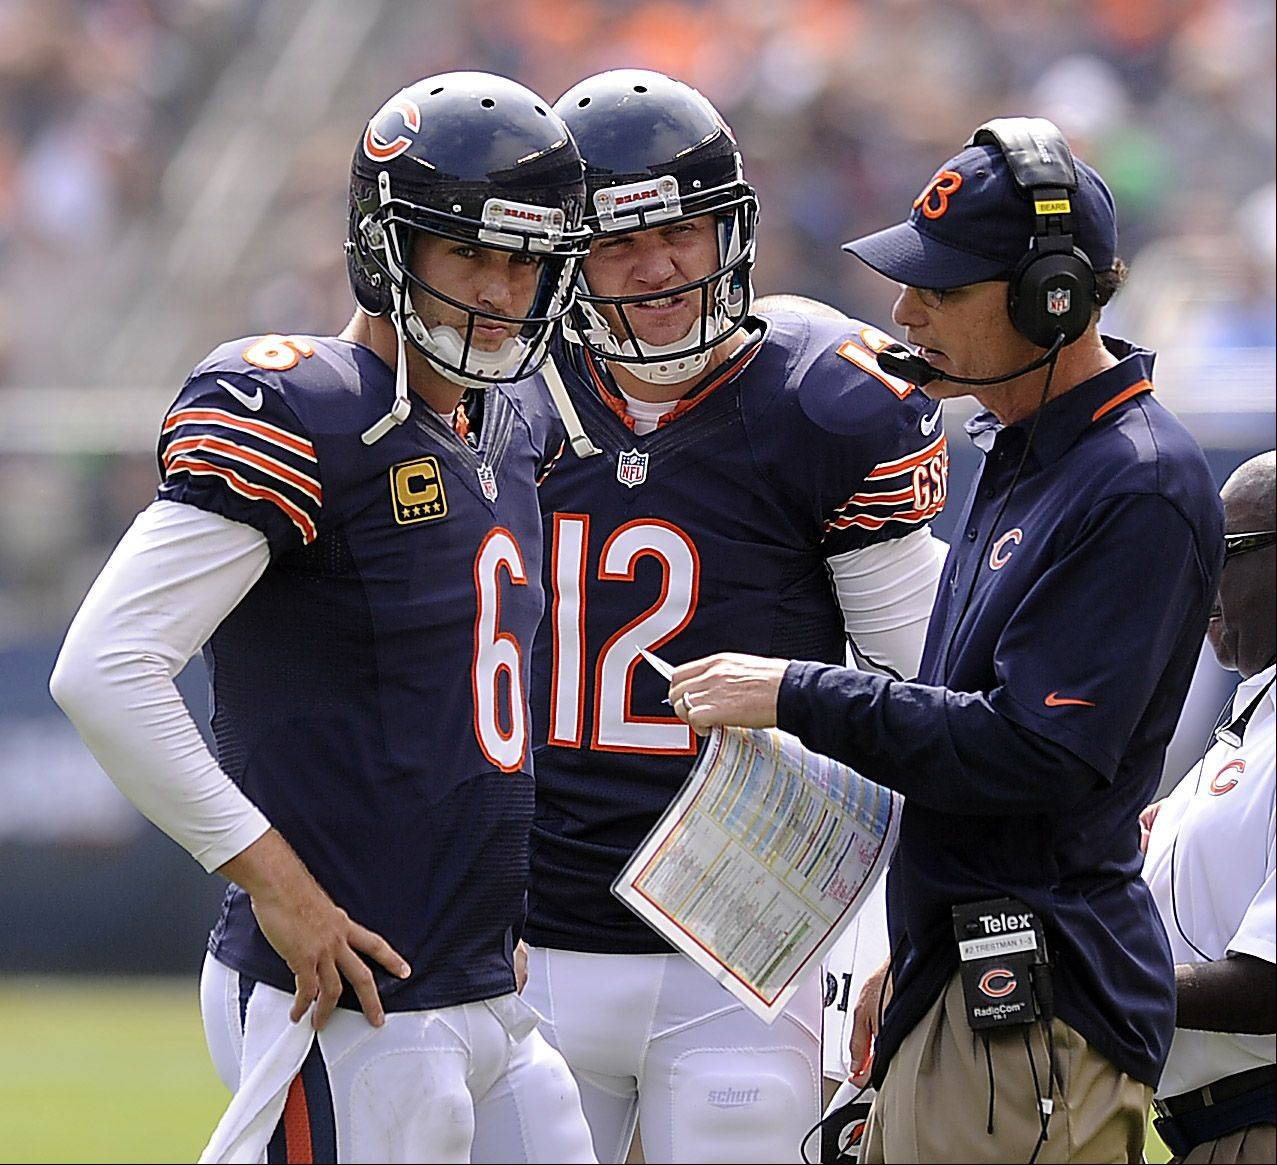 Chicago Bears head coach Marc Trestman talks things over with quarterback Jay Cutler and backup quarterback Josh McCown in the season opener at Soldier Field in Chicago.